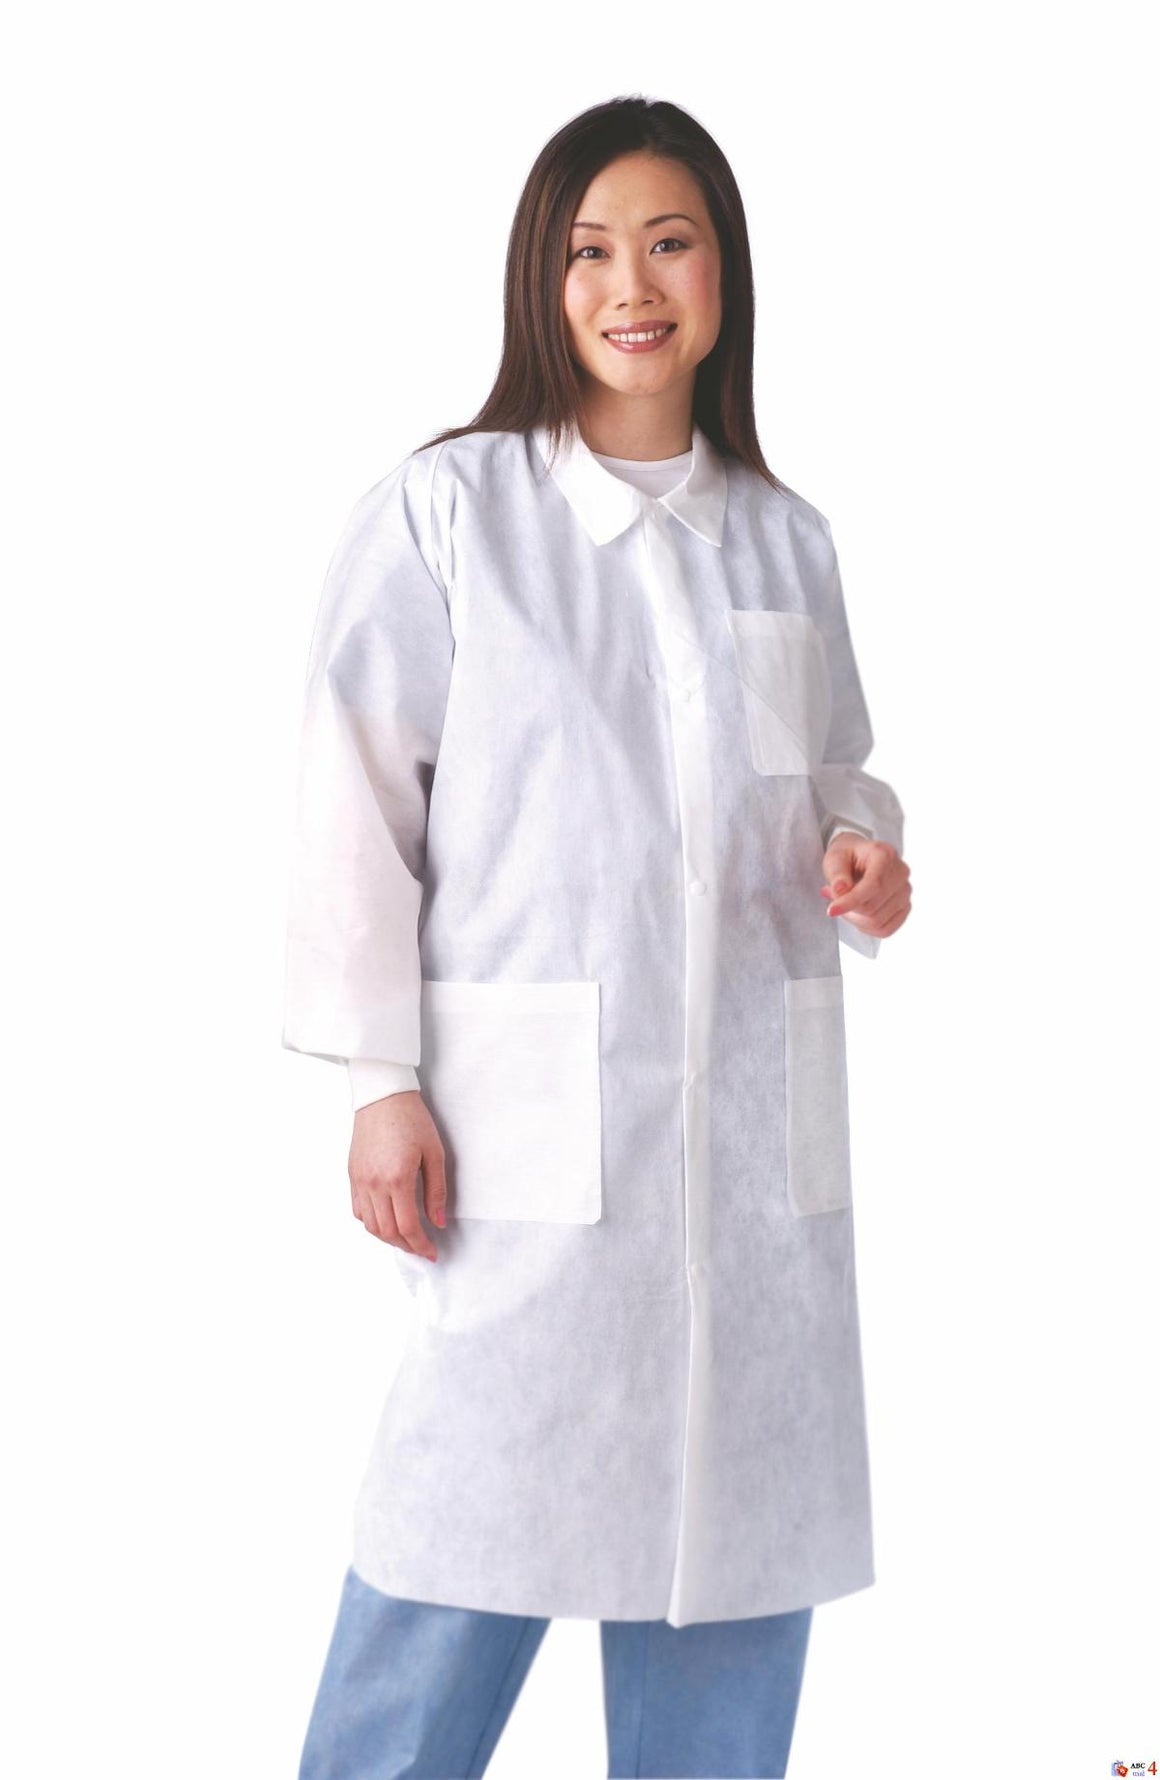 Disposable Knit Cuff / Traditional Collar Multi-Layer Lab Coats,White,3XL, Case